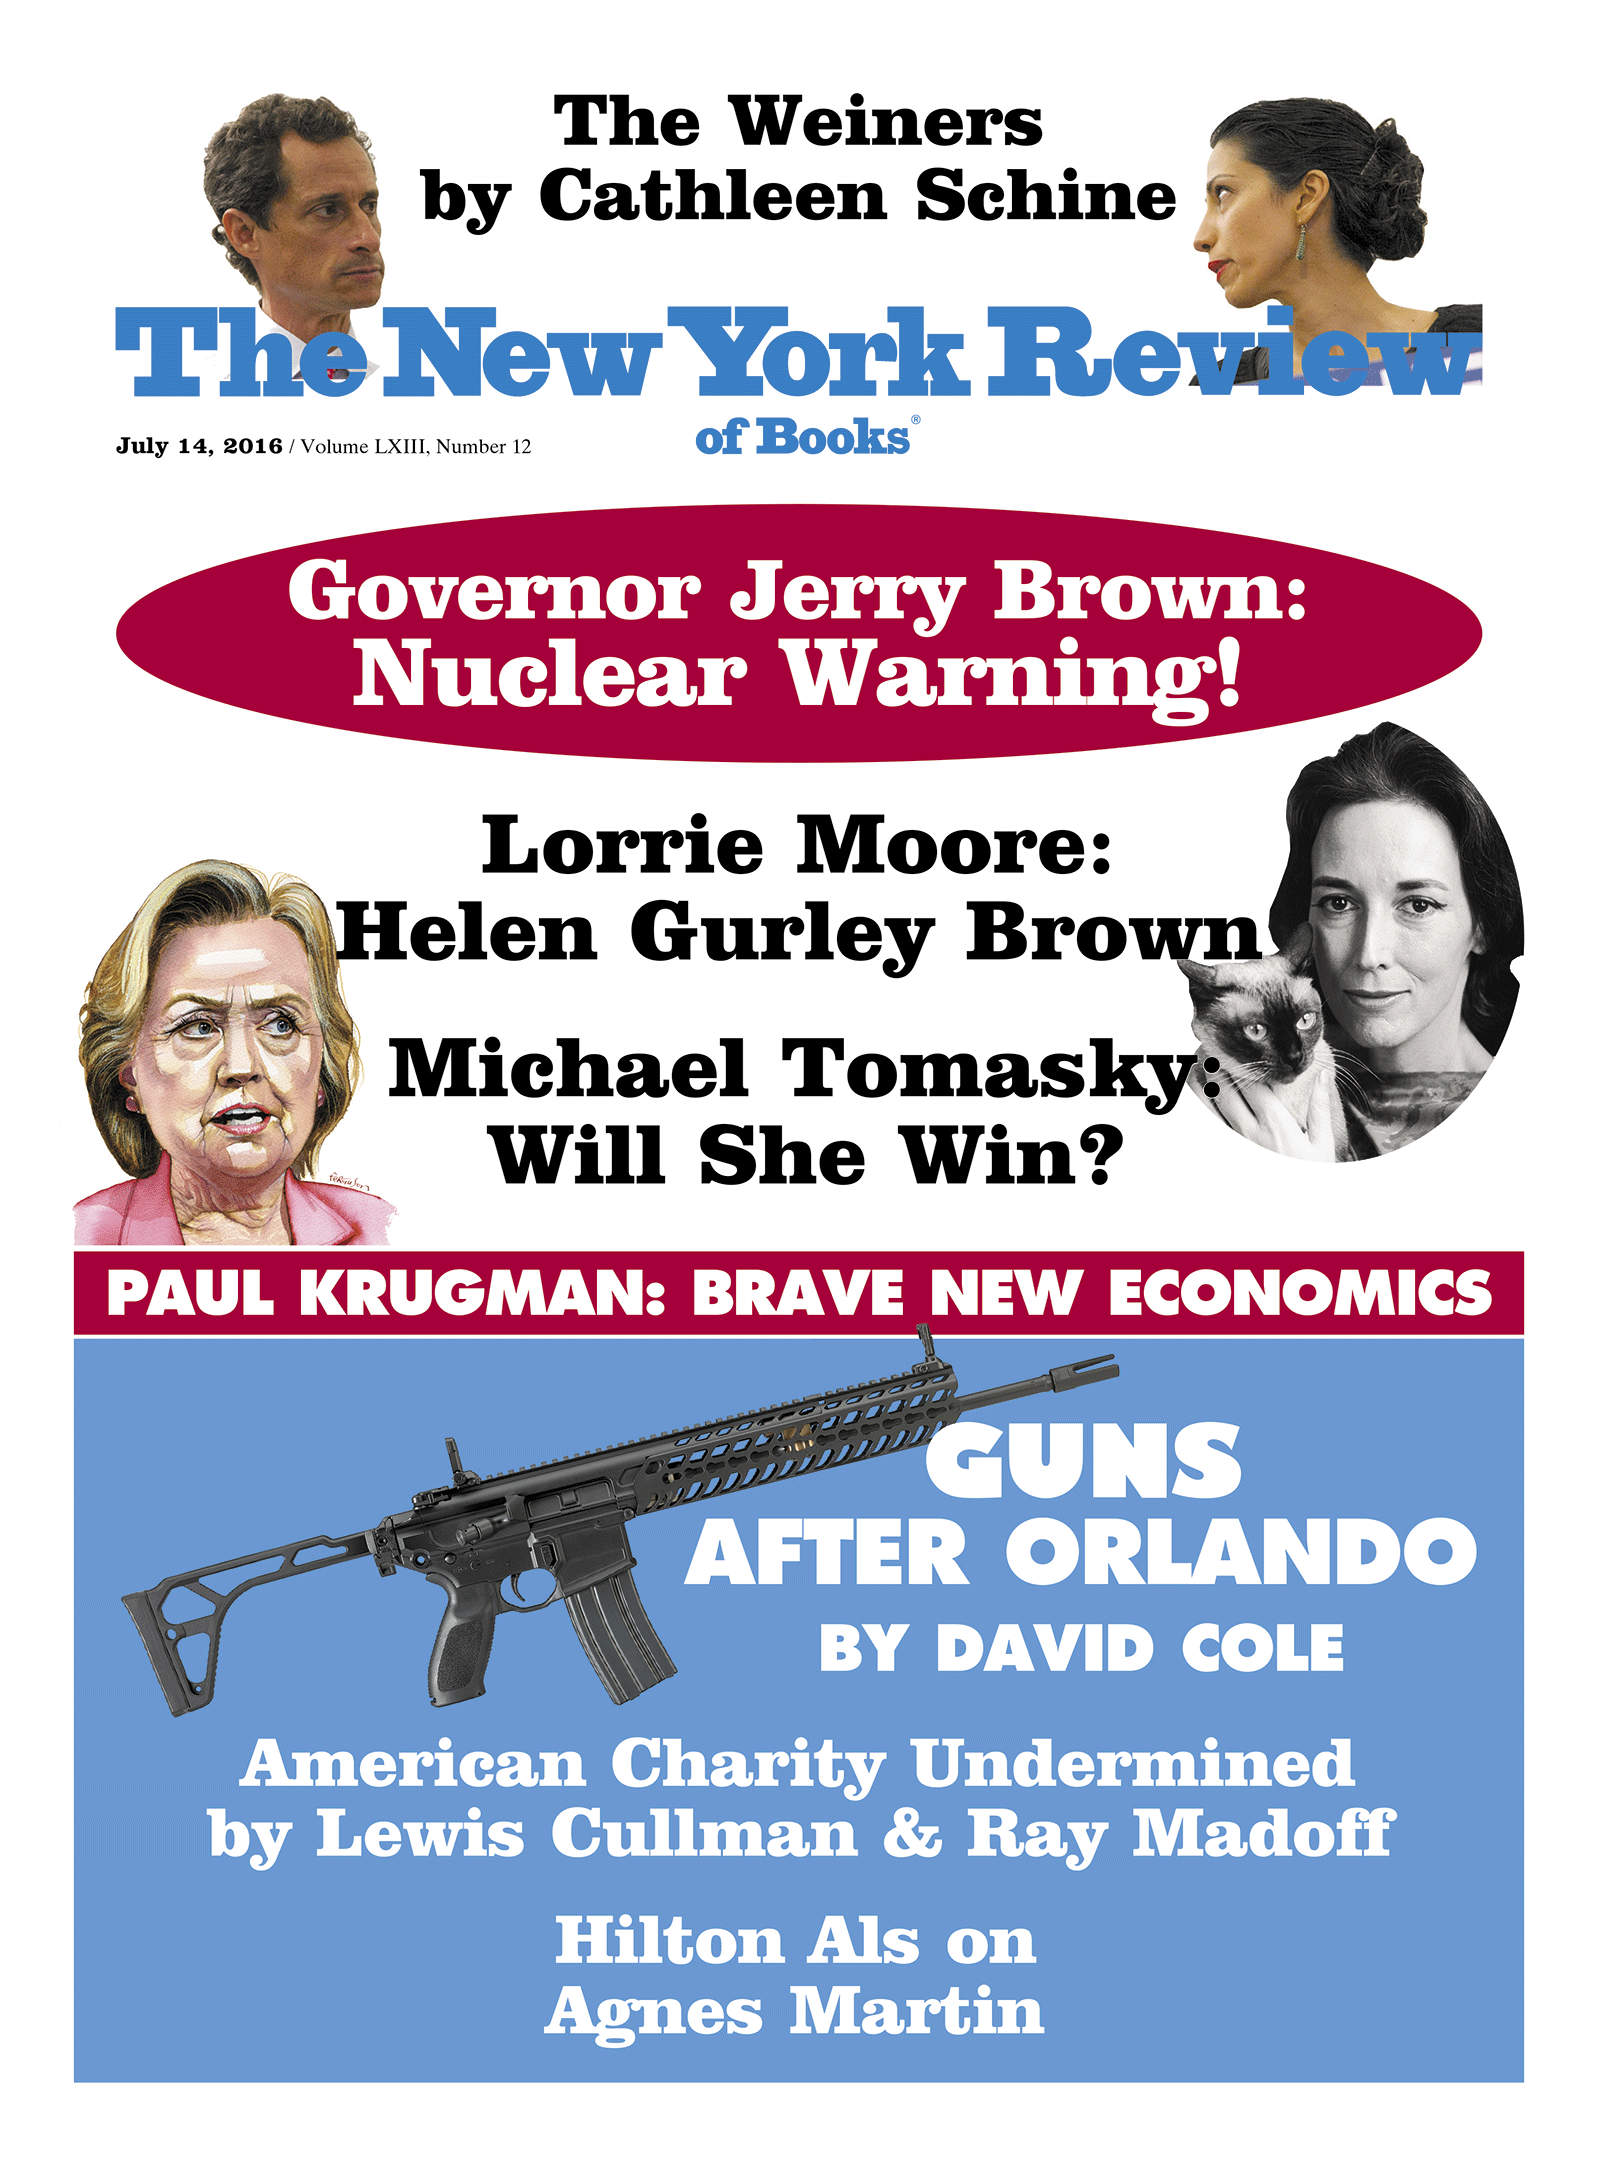 Image of the July 14, 2016 issue cover.